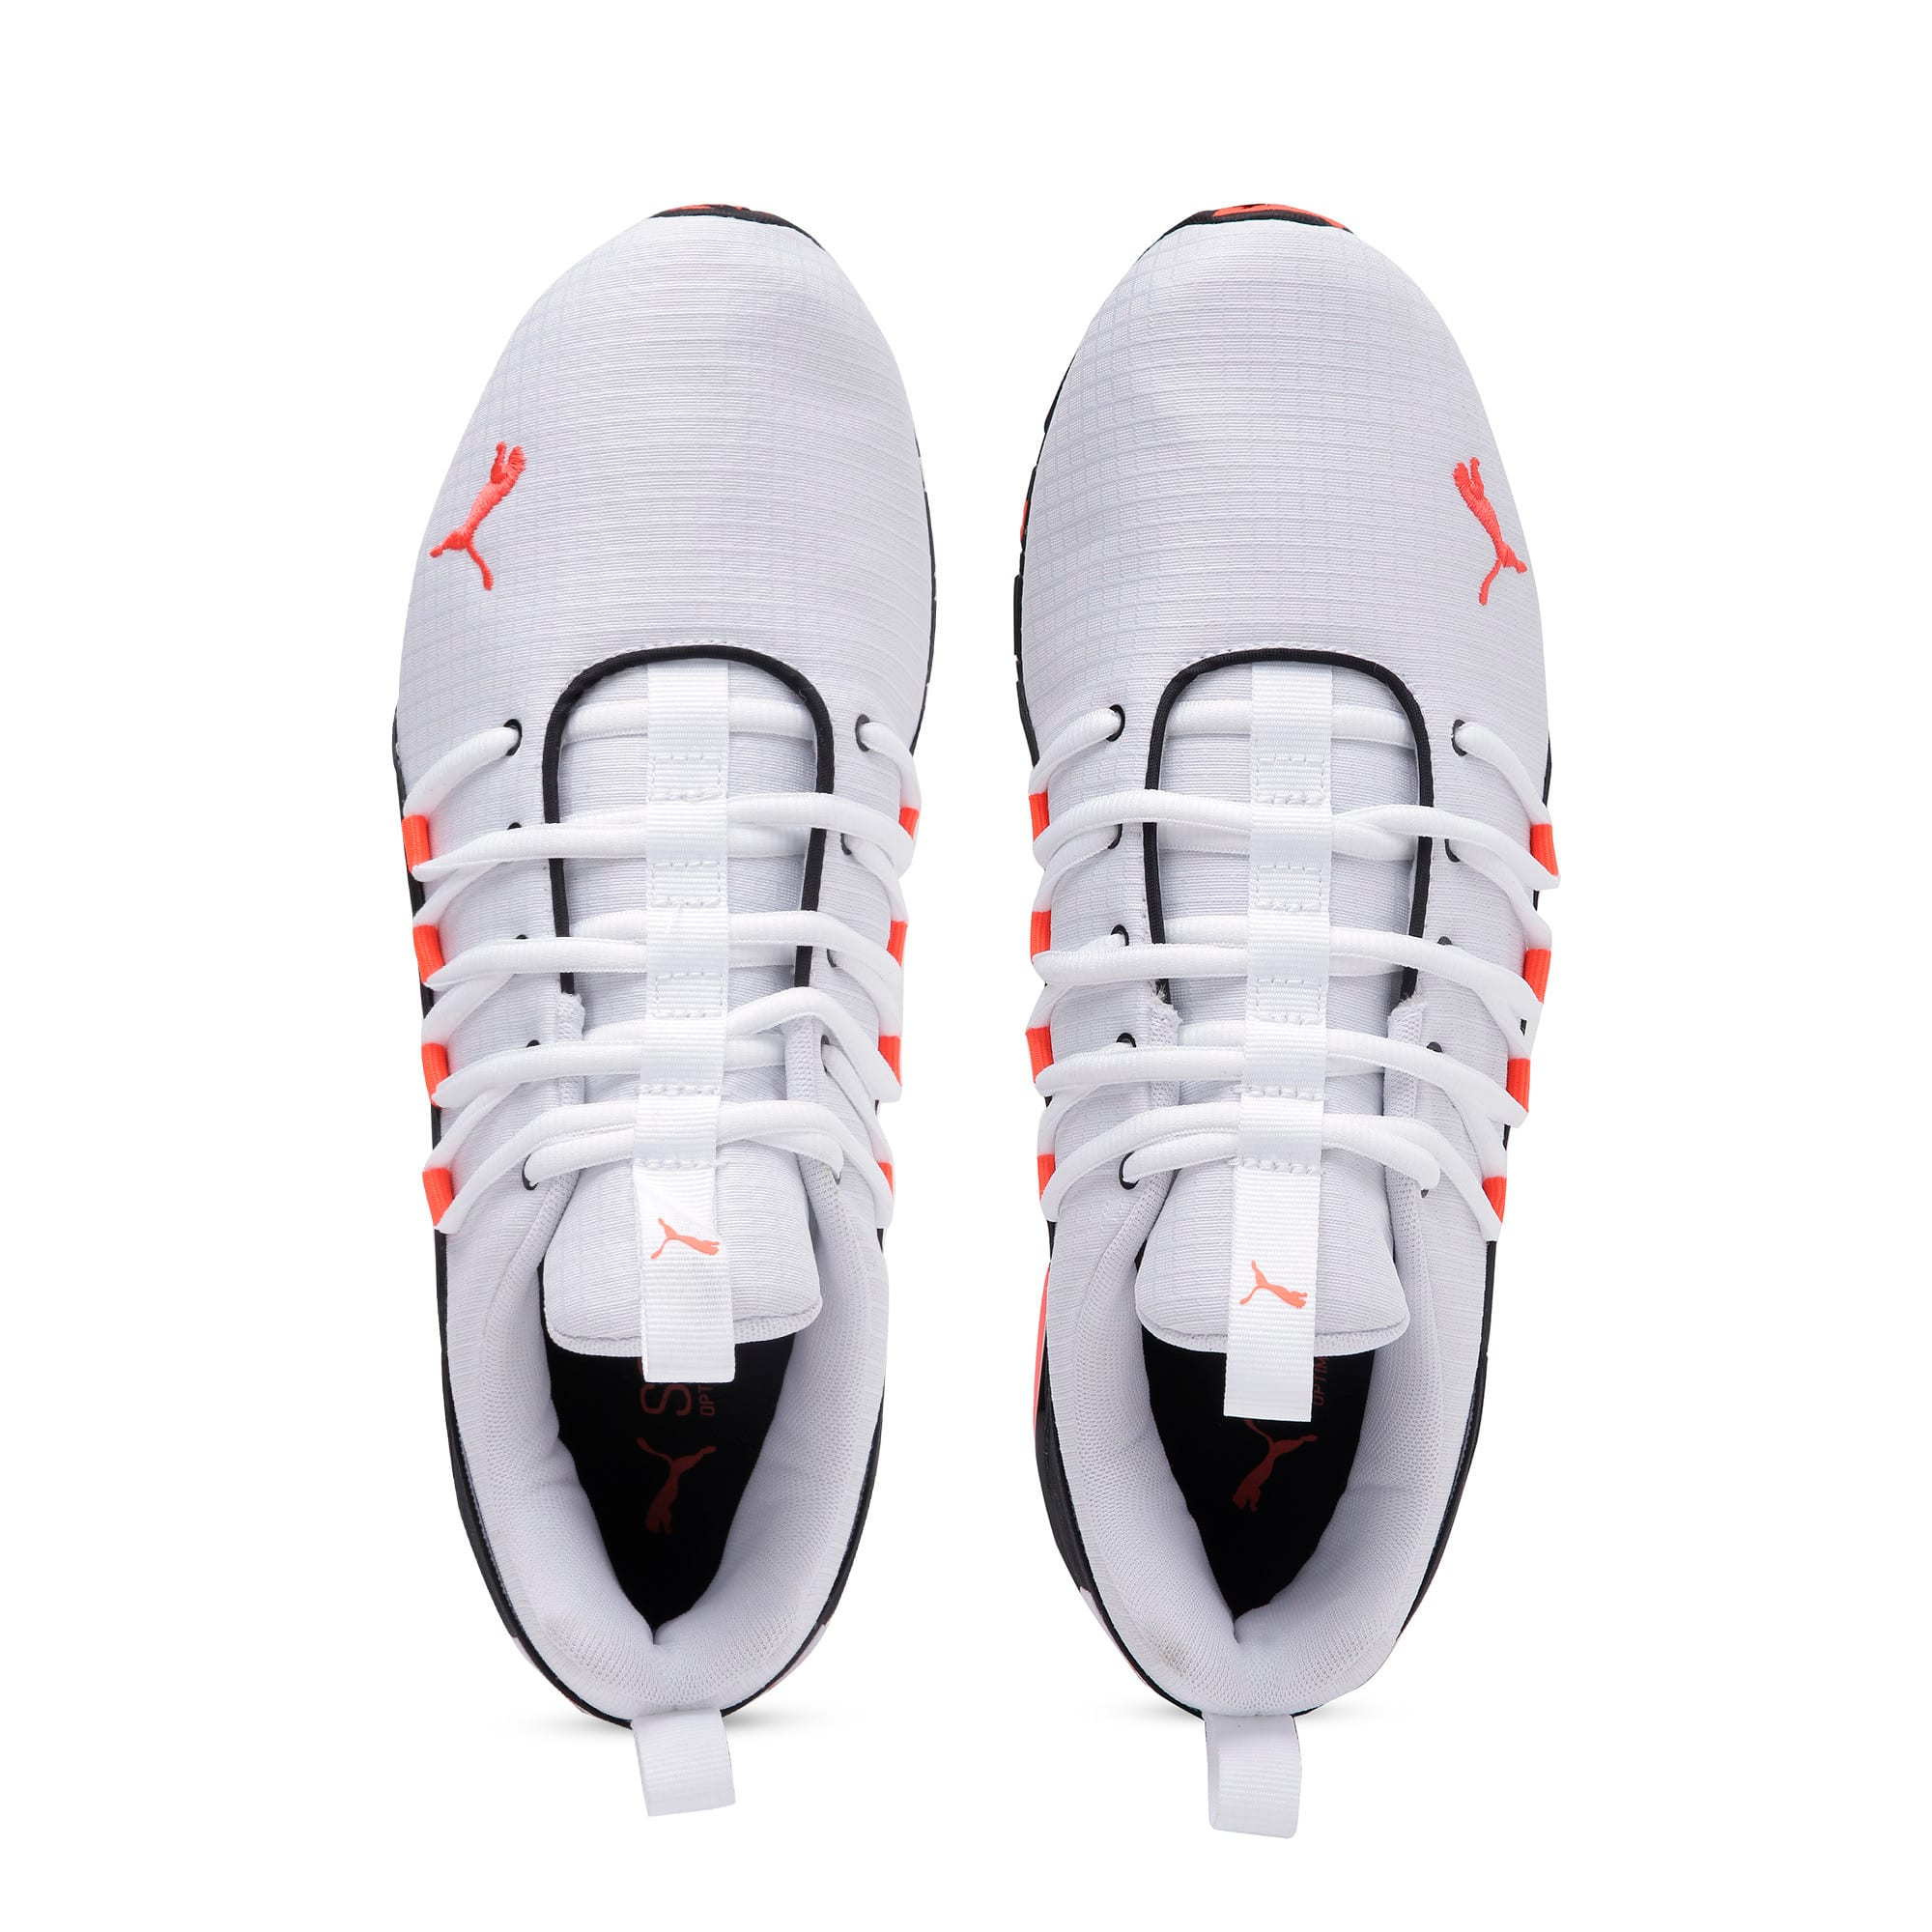 Thumbnail 8 of Axelion Rip Men's Running Shoes, White-Black-Nrgy Red, medium-IND